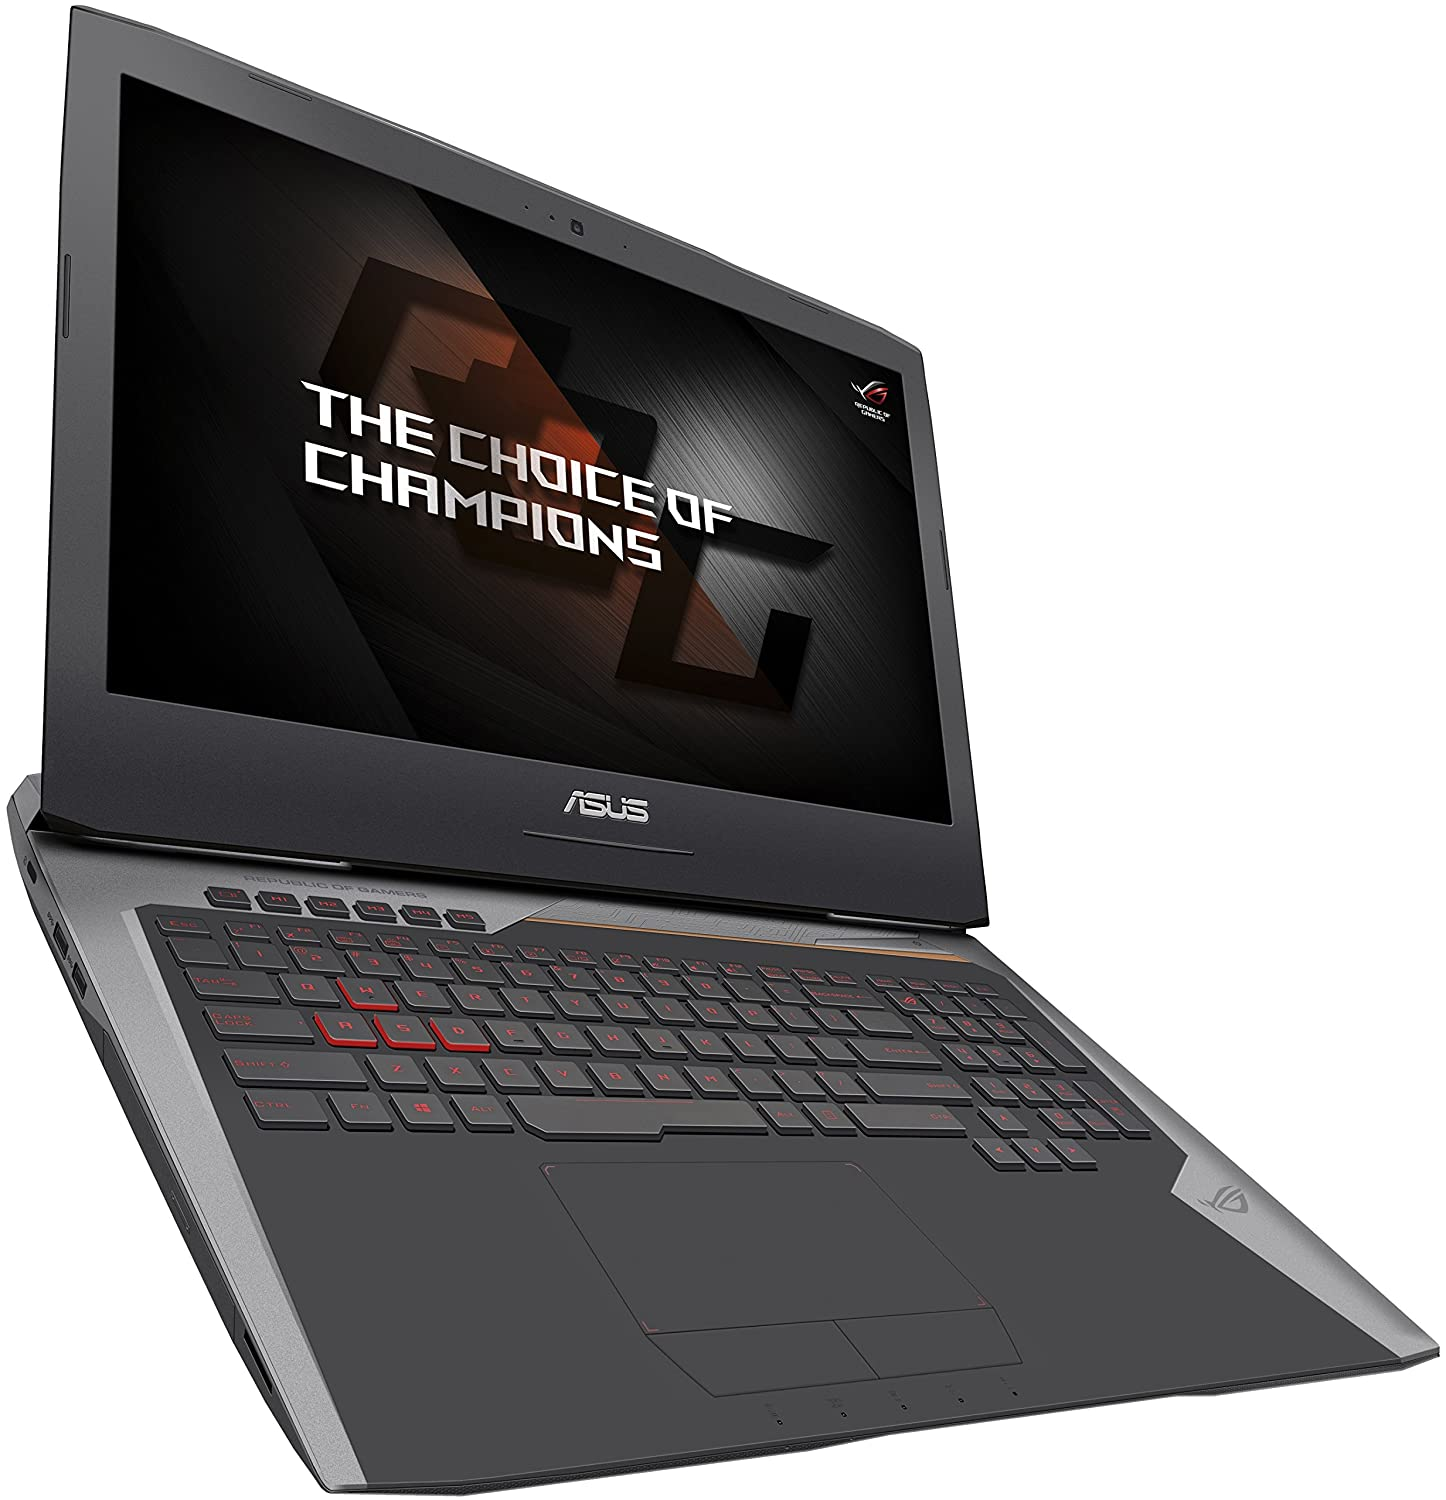 ASUS ROG G752VY-DH78K